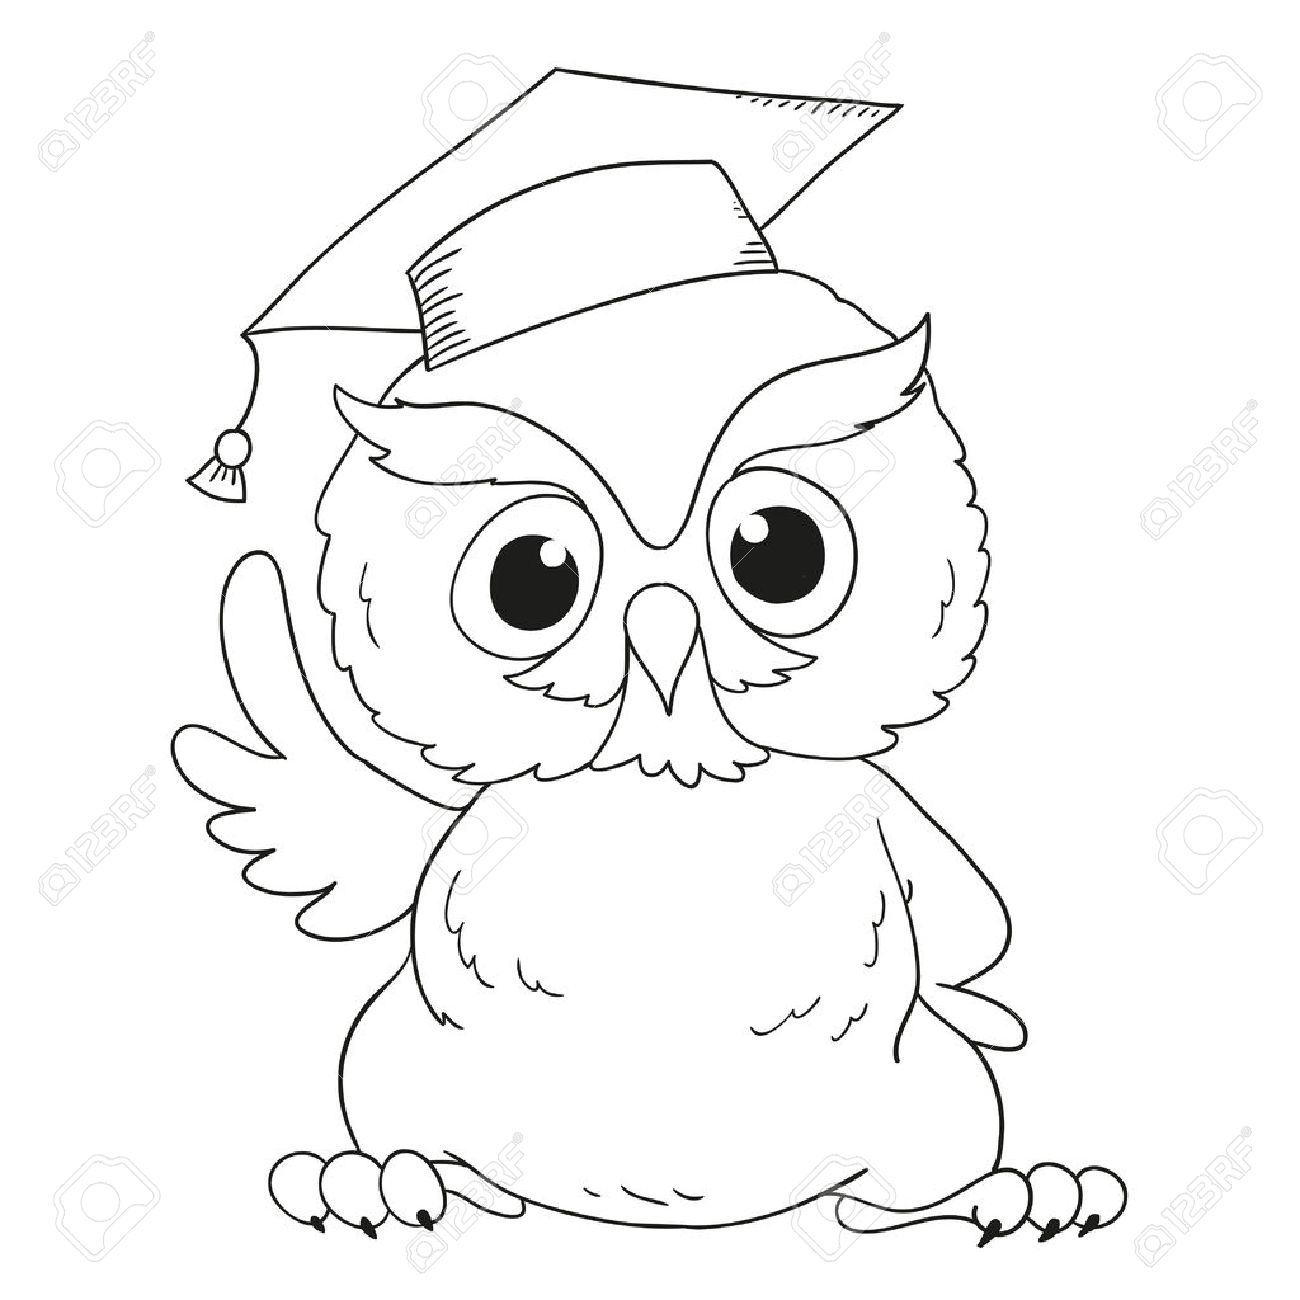 Awesome Owl For Coloring Gallery - Amazing Printable Coloring ...